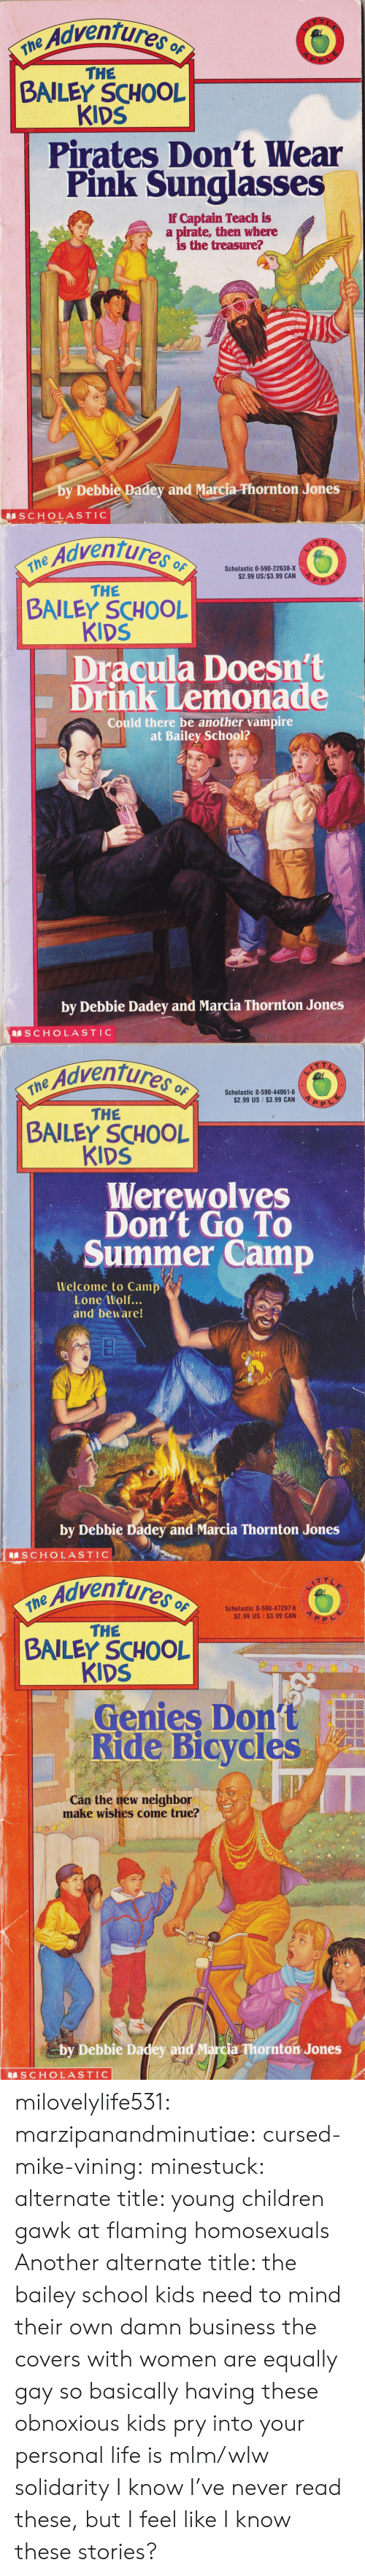 summer camp: Adventures o  ne  THE  BAILEY SCHOOL  KIDS  Pirates Don't Wear  Pink Sunglasses  If Captain Teach is  a pirate, then where  is the treasure?  by Debbie Padey and Marcia-Phornton Jones  SCHOLASTIC   Adventures  the Advent  Scholastic 0-590-22638-X  $2.99 US/$3.99 CAN  THE  BAILEY SCHOOL  KIDS  Dracula Doesn't  Drink Lemonade  Could there be another vampire  at Bailey School?  by Debbie Dadey and Marcia Thornton Jones  S CHOLASTIC   Adventures o  $2.99 US $3.99 CAN  THE  BAILEY SCHOOL  KIDS  Werewolves  Don't Go To  Summer Camp  Welcome to Camp  Lone Wolf...  and beware!  by Debbie Dadey and Marcia Thornton Jones  S CHOLASTIC   e Adventures  Scholastic 0-590-47297-6  $2.99 US $3.99 CAN  THE  BAILEY SCHOOL  KIDS  Genies Dont  Ride Bicycles  Cán the new neighbor  make wishes come true?  by Debbie Dadey and Marcia Thornton Jones  SCHOLASTIC milovelylife531: marzipanandminutiae:  cursed-mike-vining:  minestuck:  alternate title: young children gawk at flaming homosexuals   Another alternate title: the bailey school kids need to mind their own damn business  the covers with women are equally gay so basically having these obnoxious kids pry into your personal life is mlm/wlw solidarity   I know I've never read these, but I feel like I know these stories?